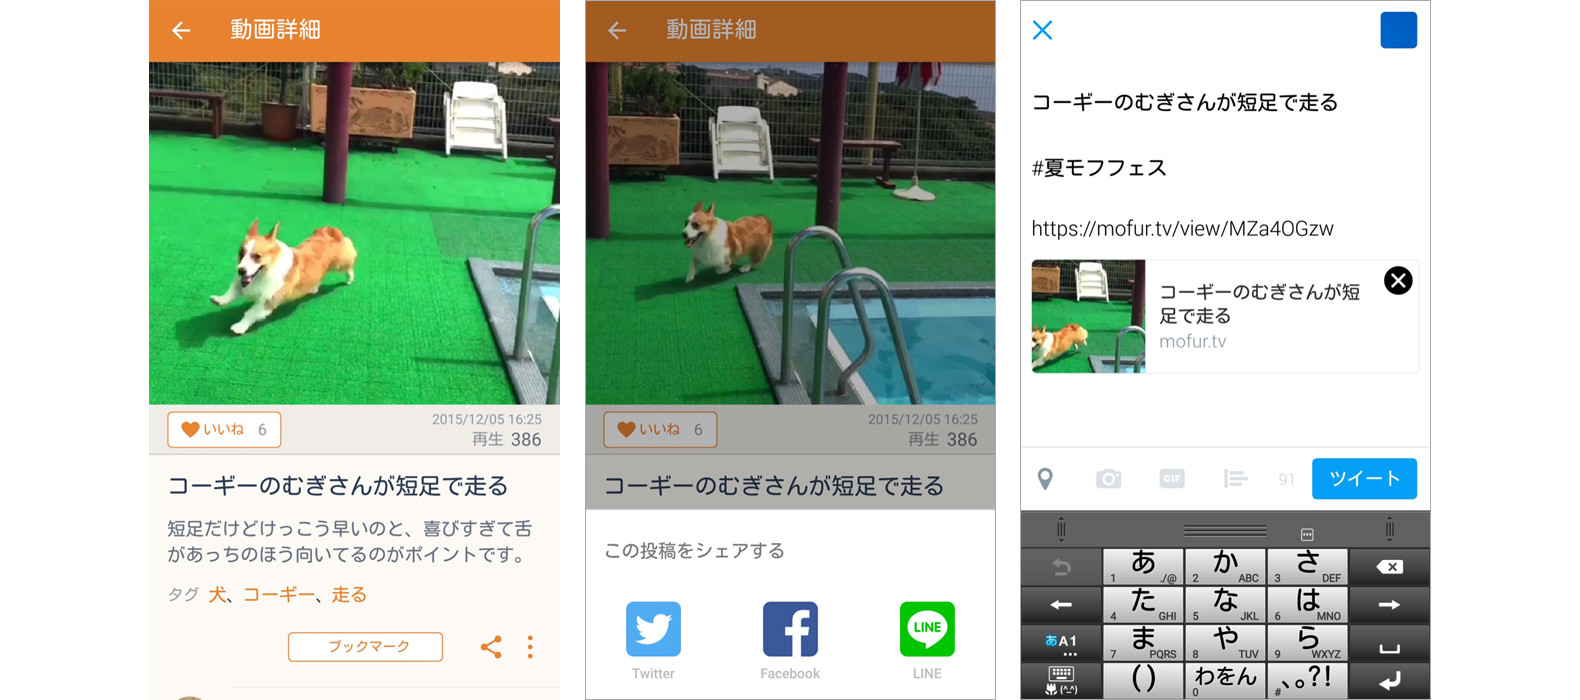 Android版 Twitter シェア方法